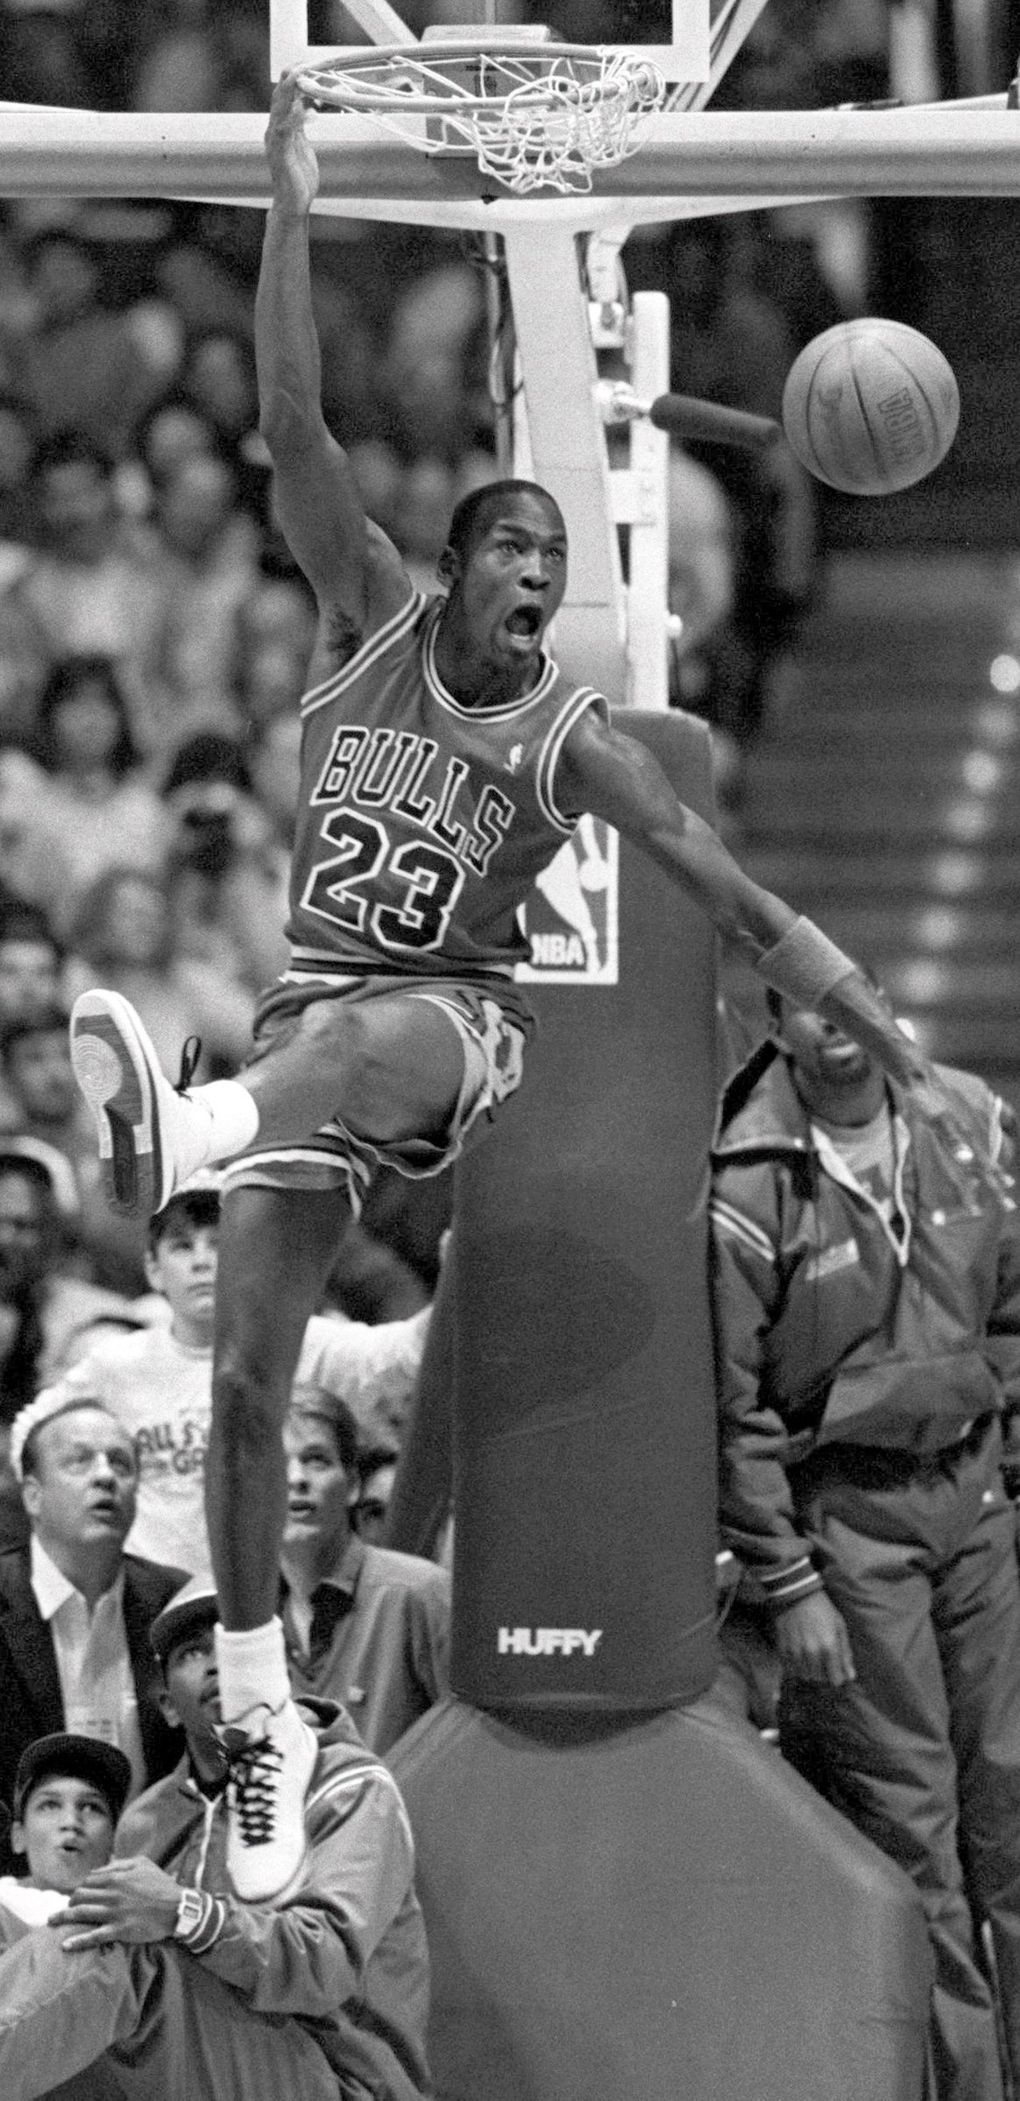 Michael Jordan competes in the 1987 NBA All-Star Slam Dunk contest in 1987. (Harley Soltes / The Seattle Times)